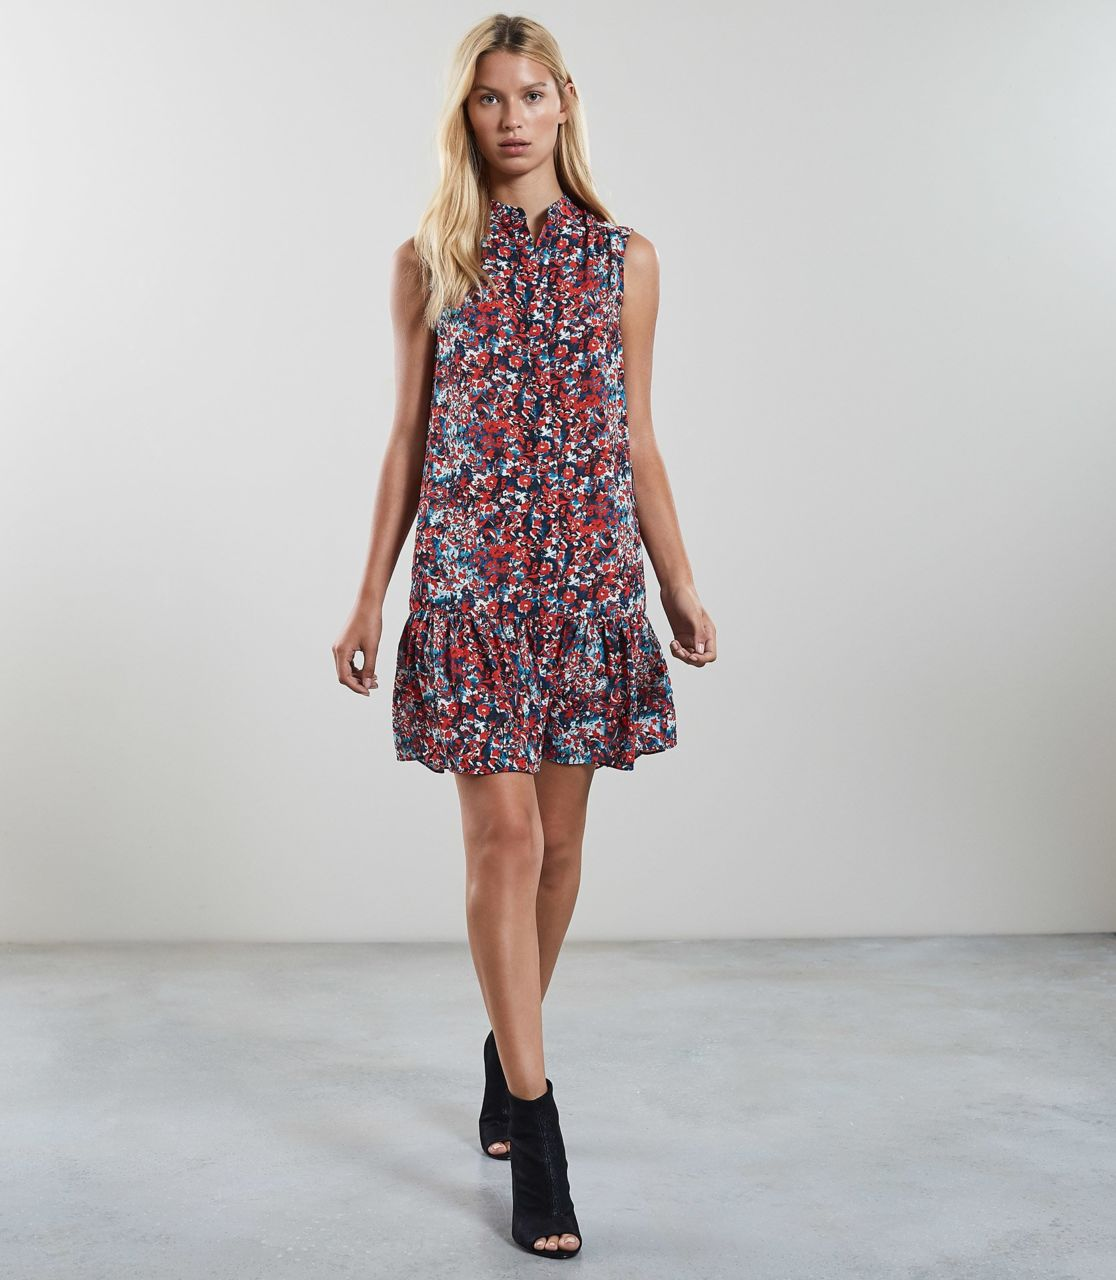 Reiss summer dress